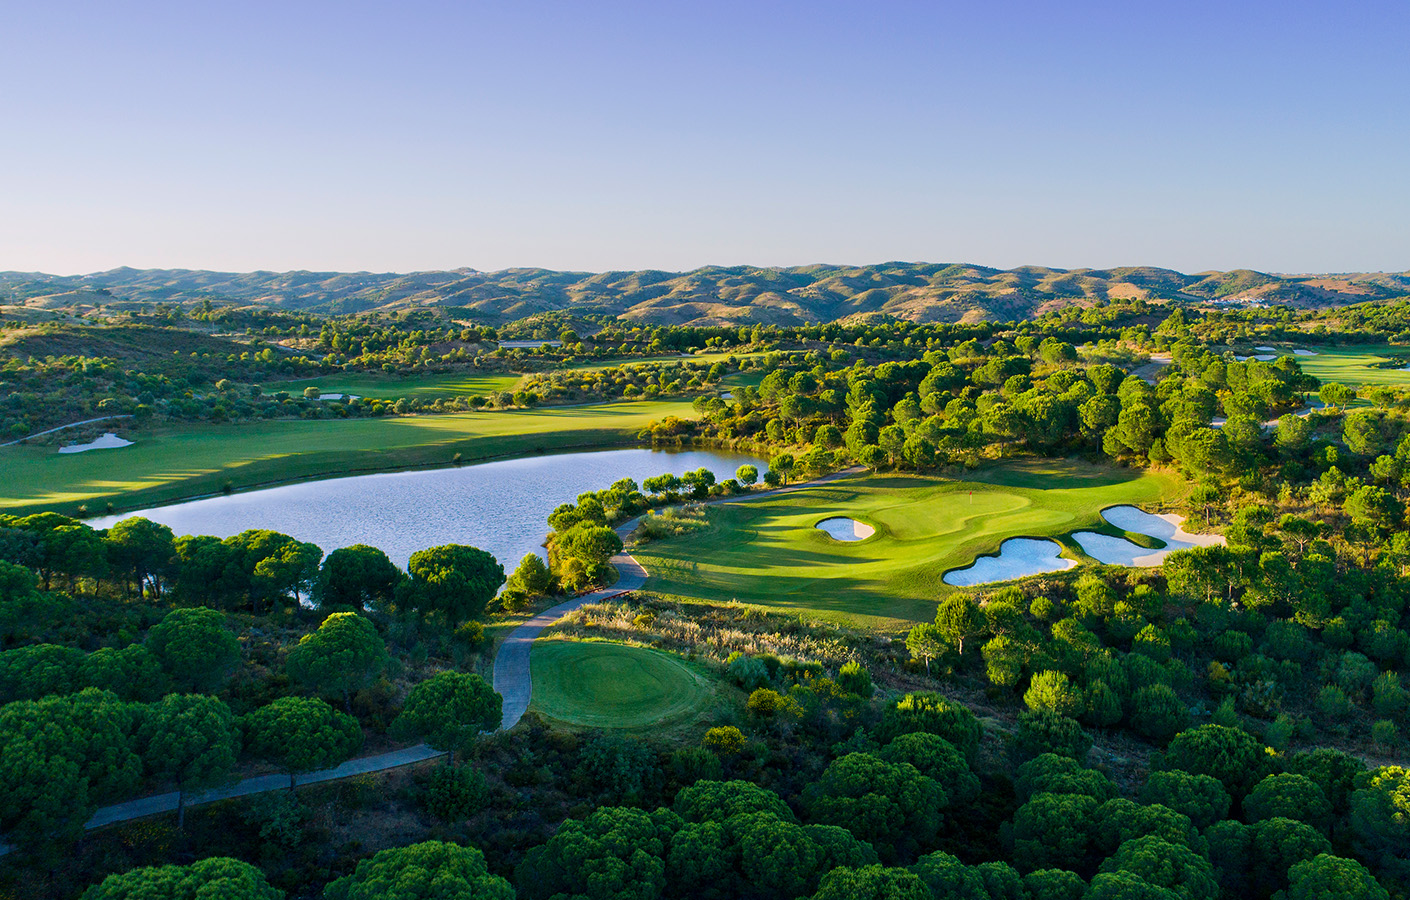 The Best Golf Resorts In Portugal best golf resorts The Best Golf Resorts In Portugal hero golf